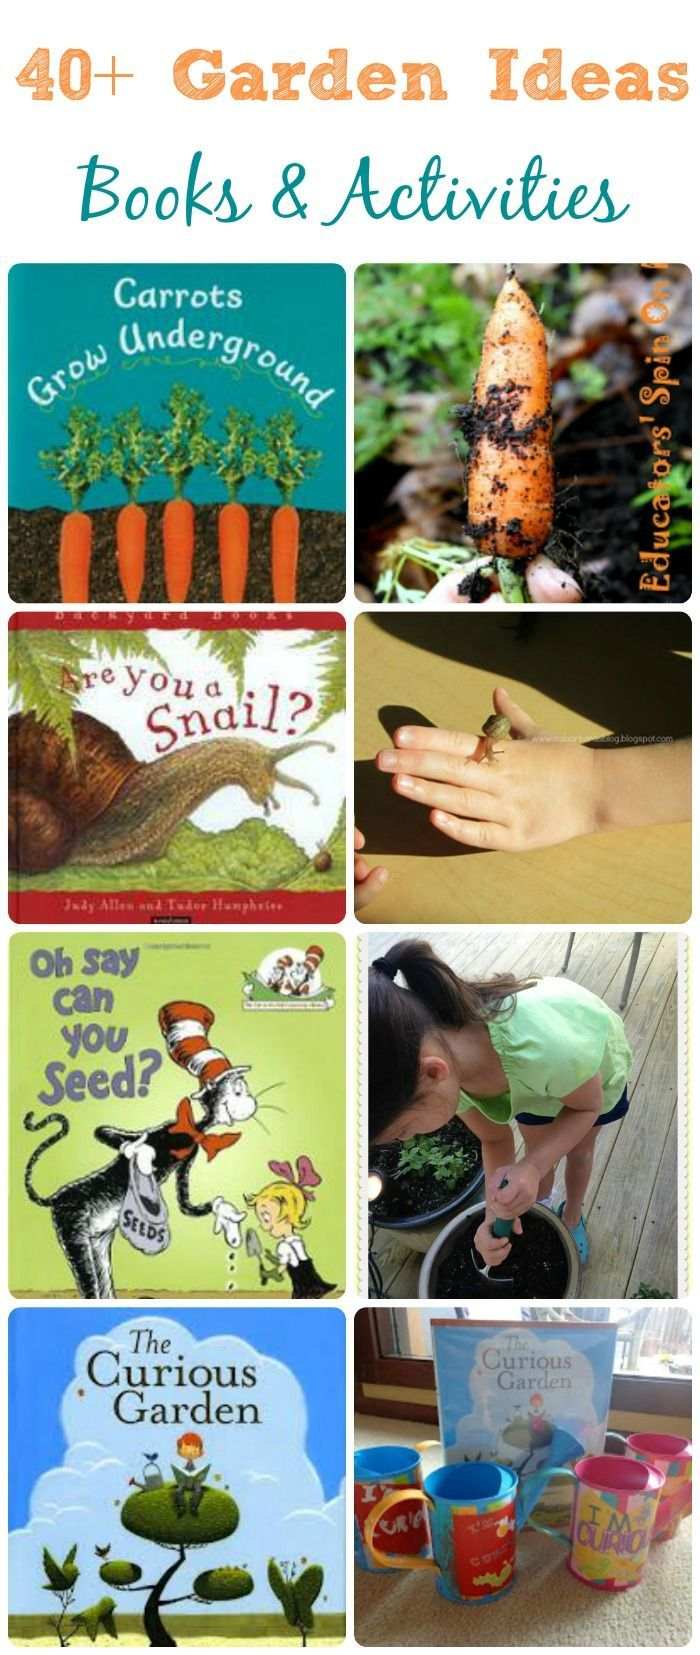 Garden books & activities for kids -- great summer proojects for kids and fun ways to learn about plants & gardens!